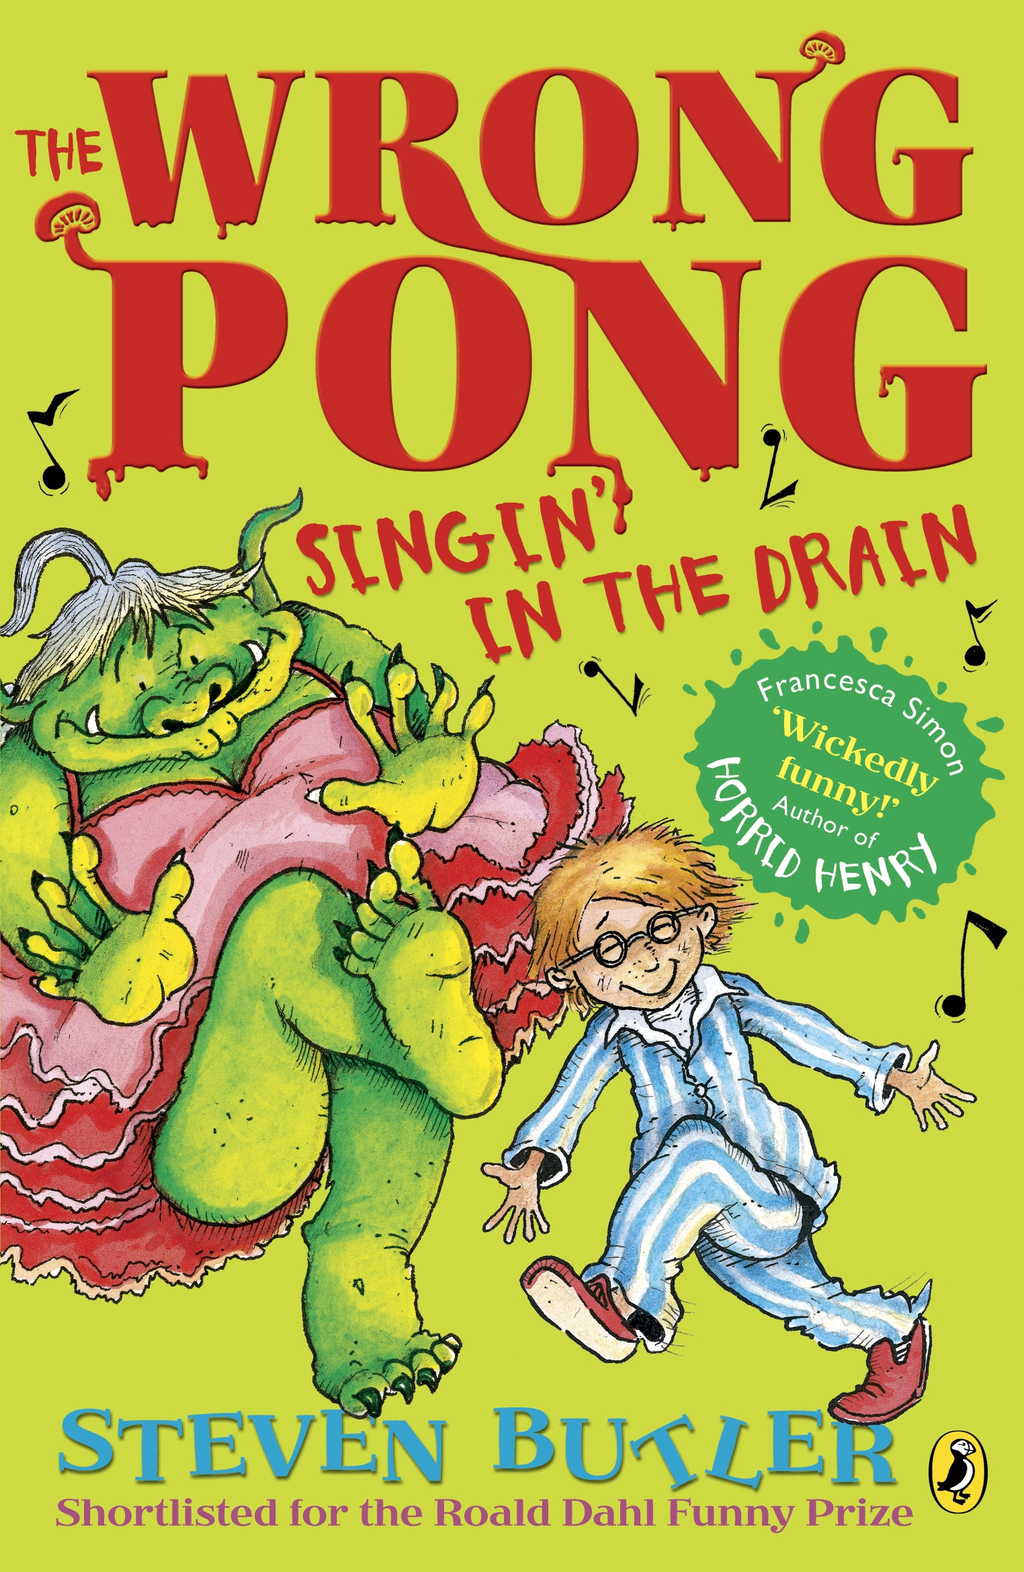 The Wrong Pong: Singin' in the Drain